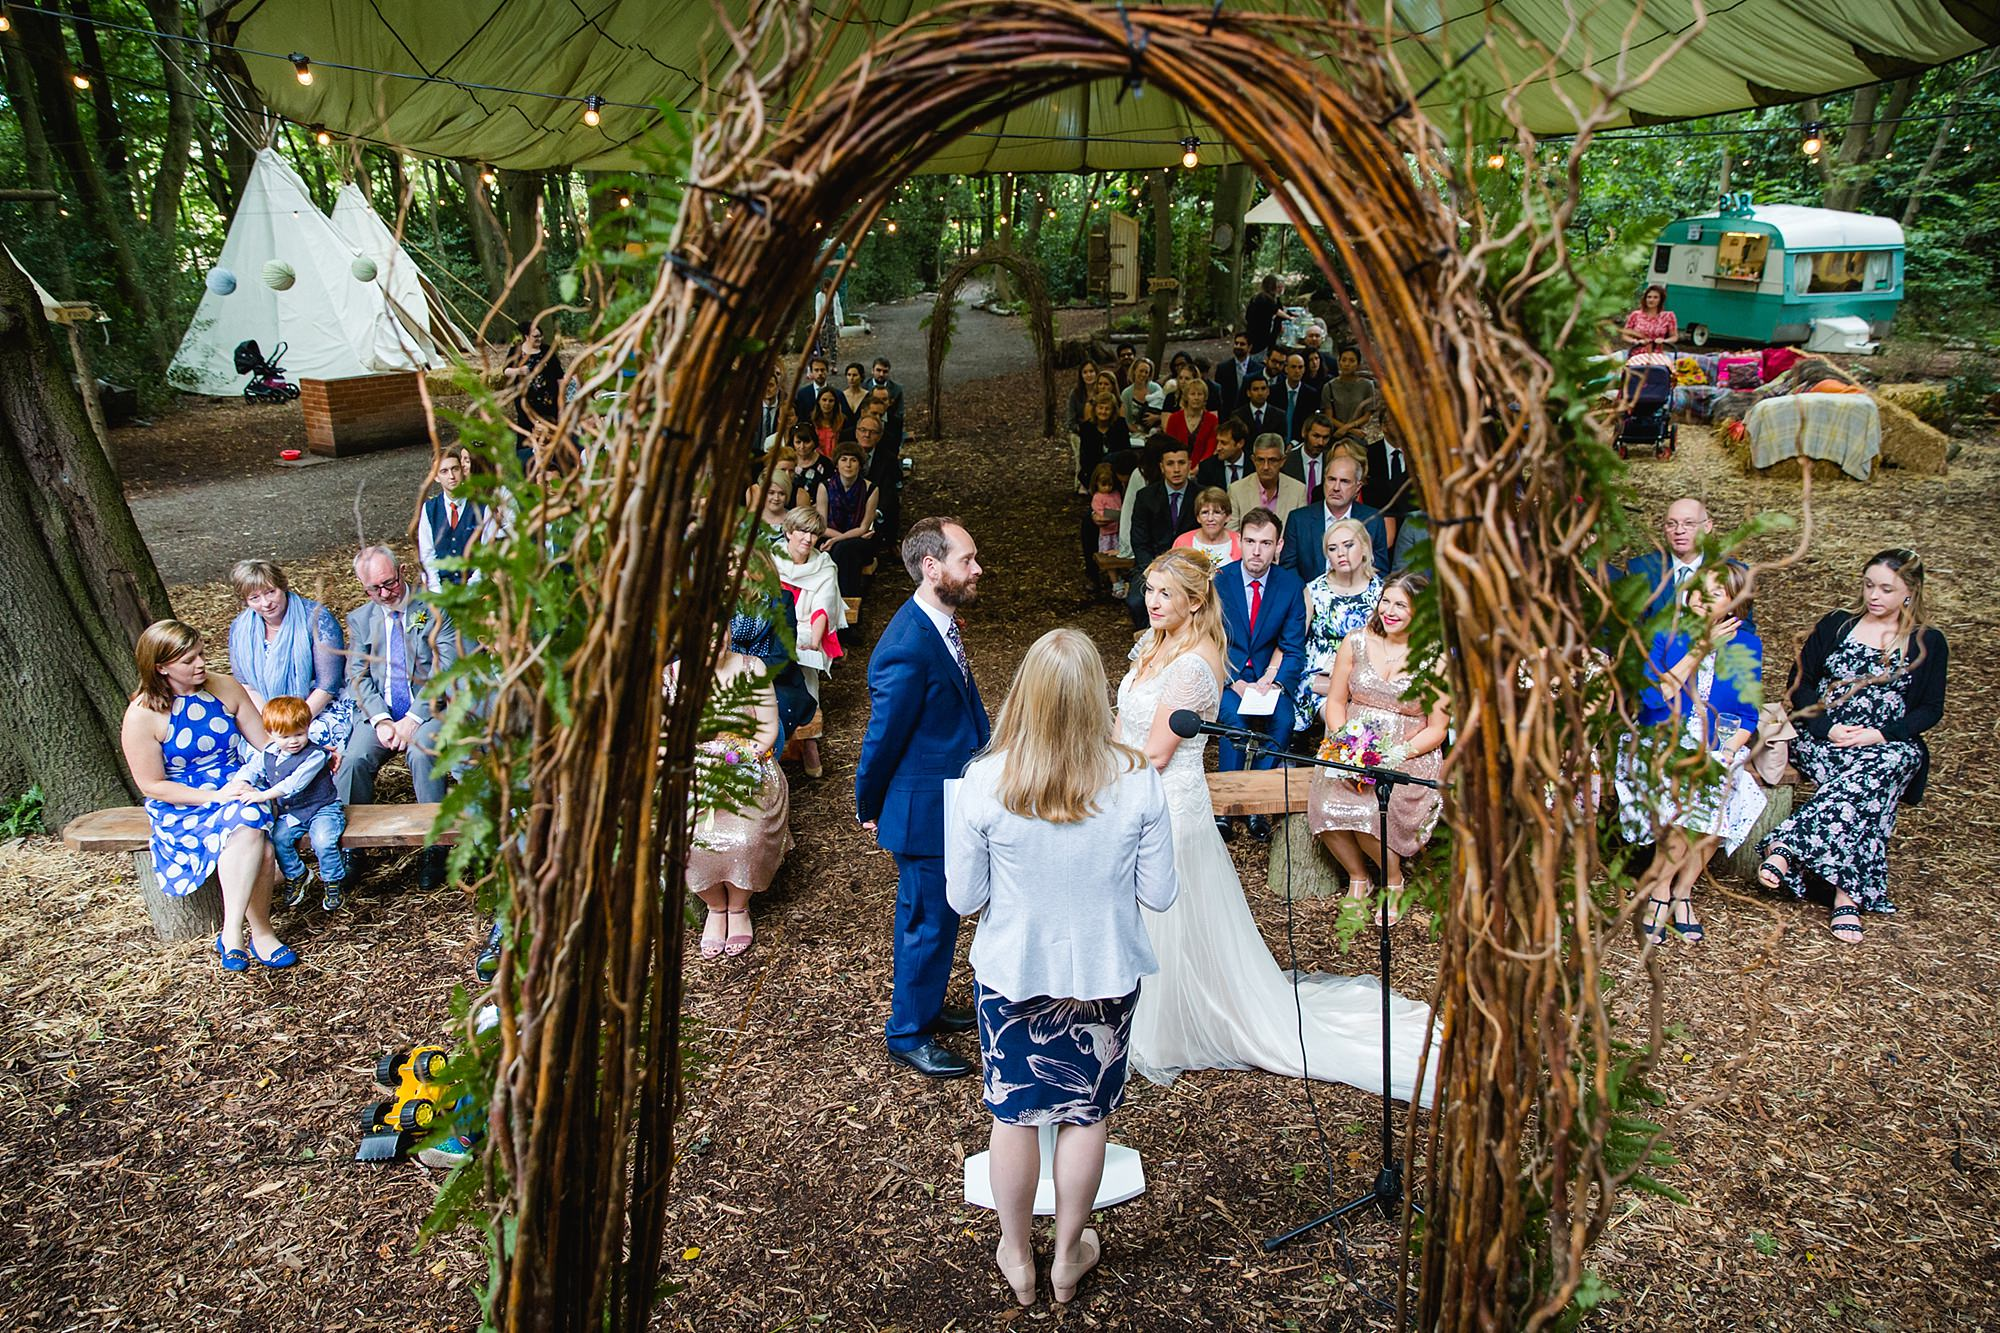 Woodland Weddings Tring ceremony